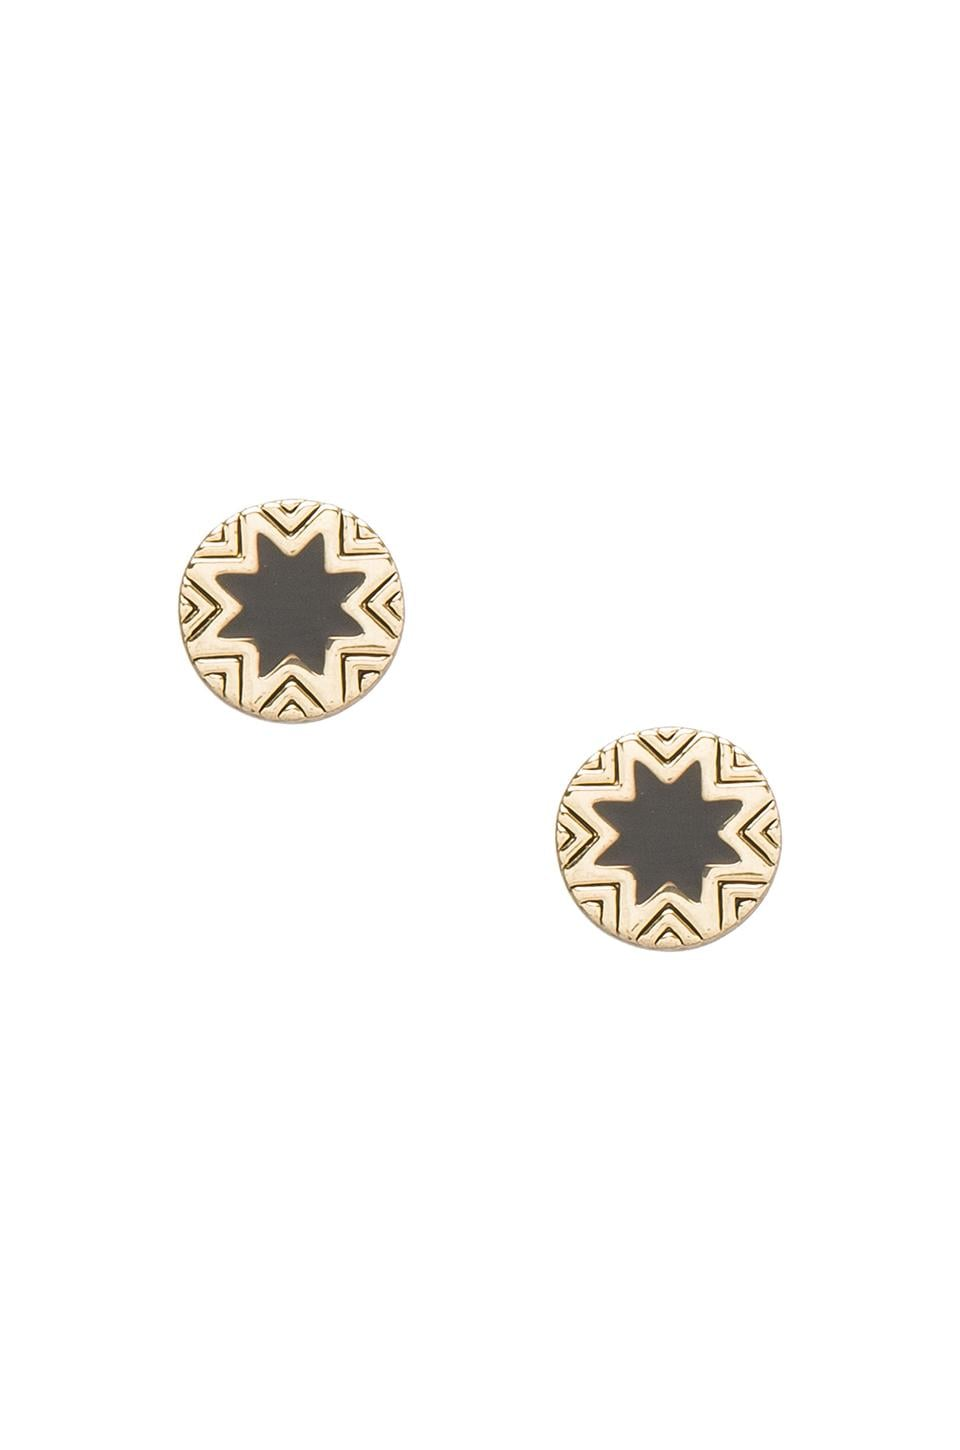 House of Harlow 1960 House of Harlow Mini Sunburst Stud Earrings Enamel in Gold Tone Black